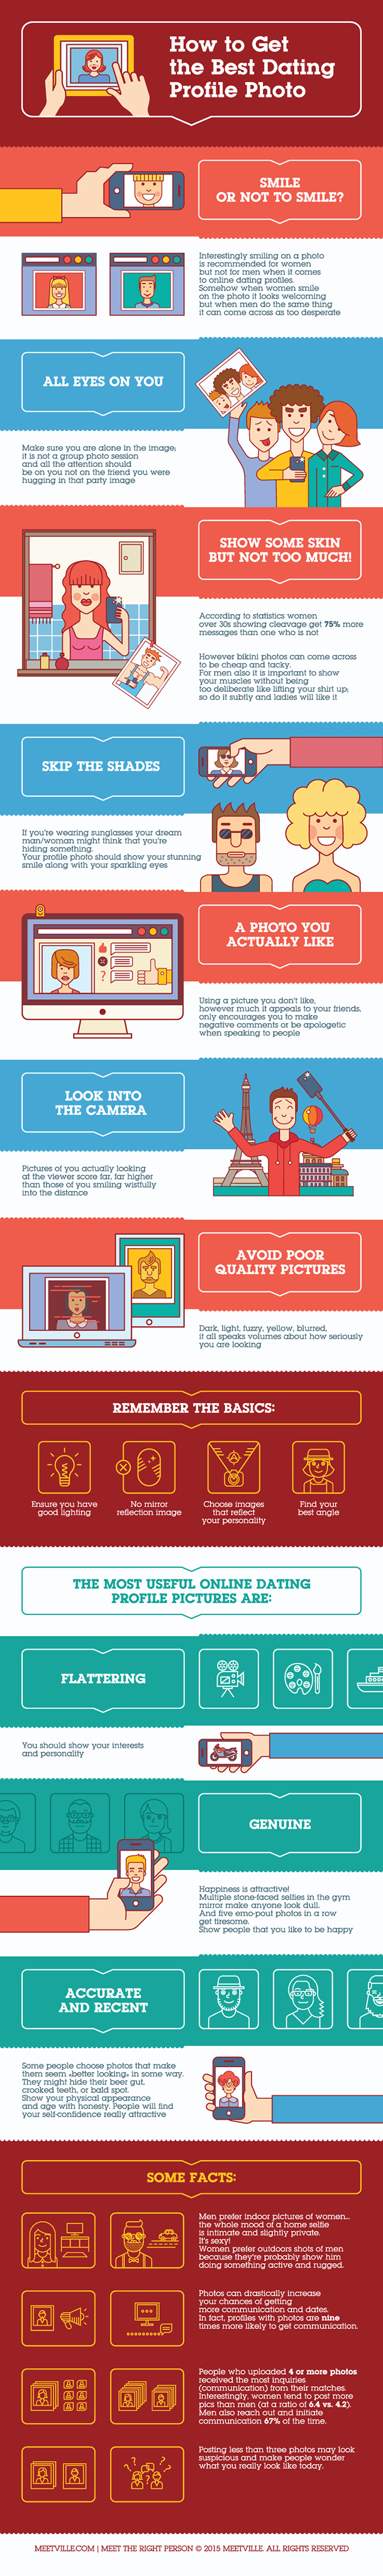 How to Get the Best Dating Profile Photo Infographic dating-singles-meetville-matchmaking